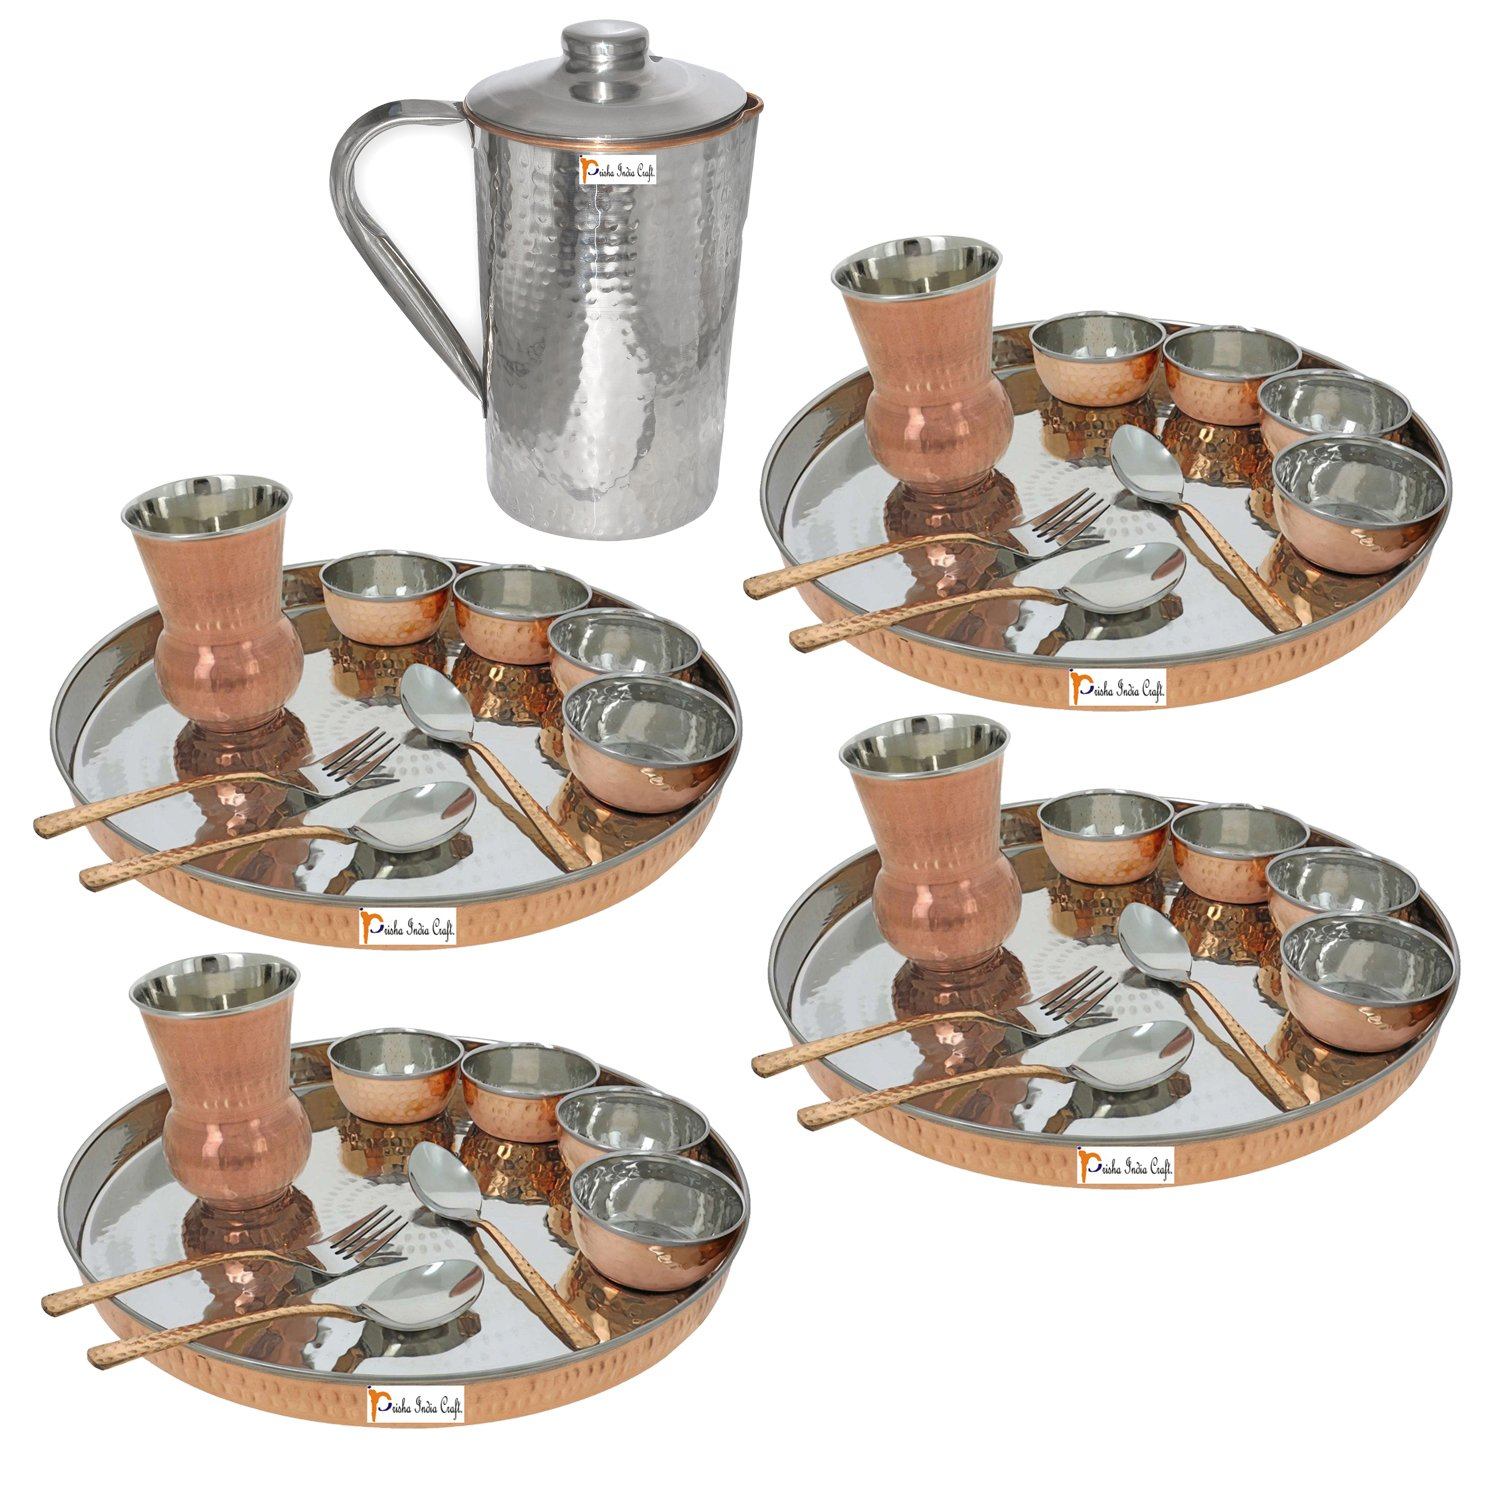 Prisha India Craft ® Set of 4 Traditional Stainless Steel Copper Dinner Set of Thali Plate, Bowls, Glass and Spoons, Dia 13'' With 1 Stainless Steel Copper Hammered Pitcher Jug - Christmas Gift